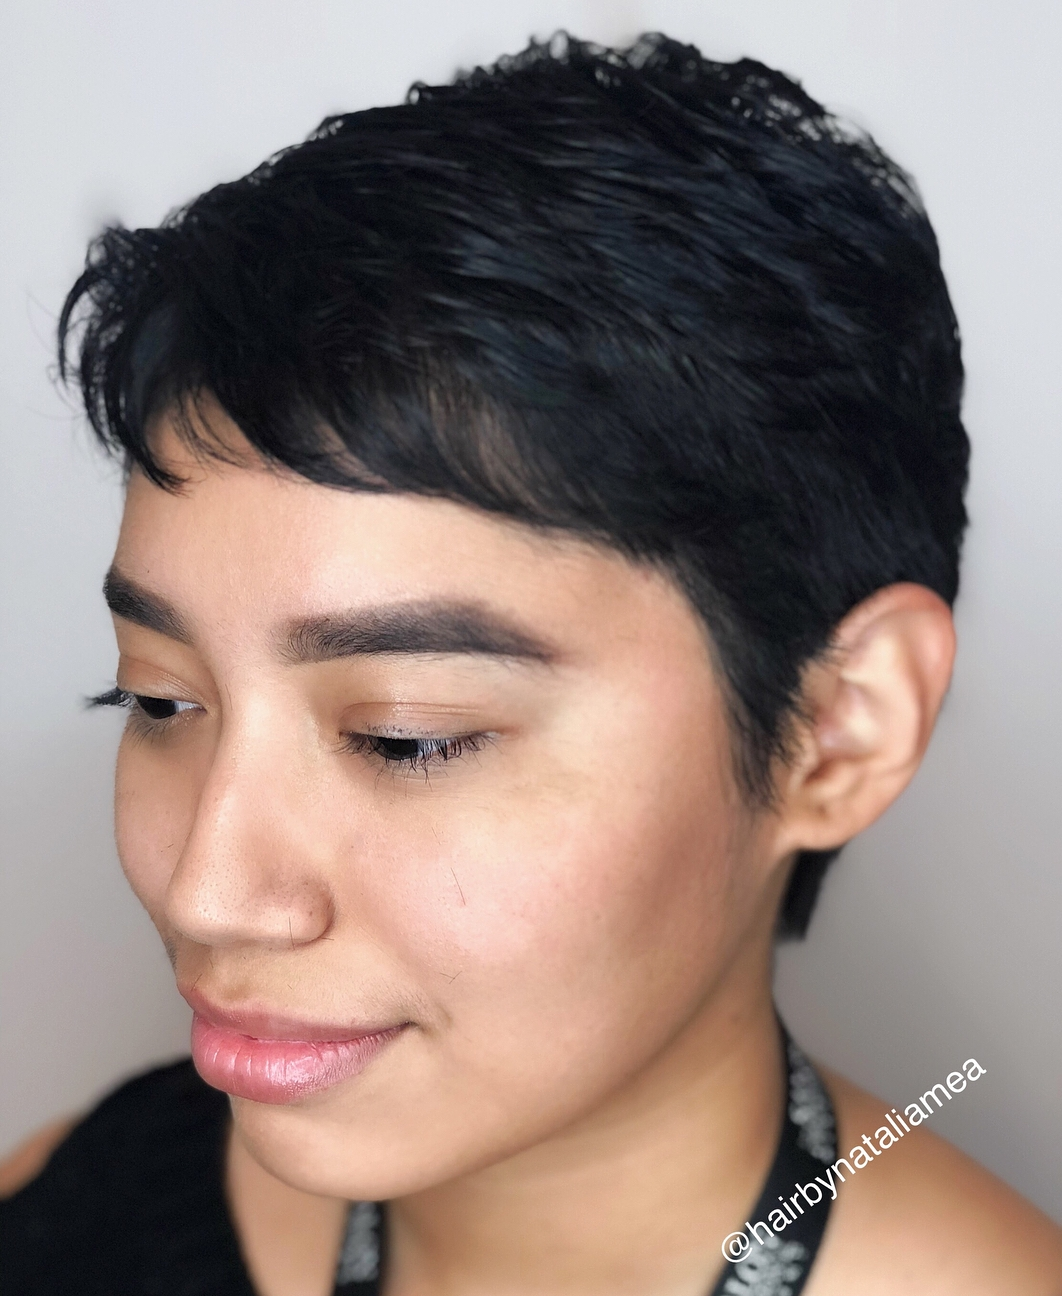 Ultra Short Crop with Bangs